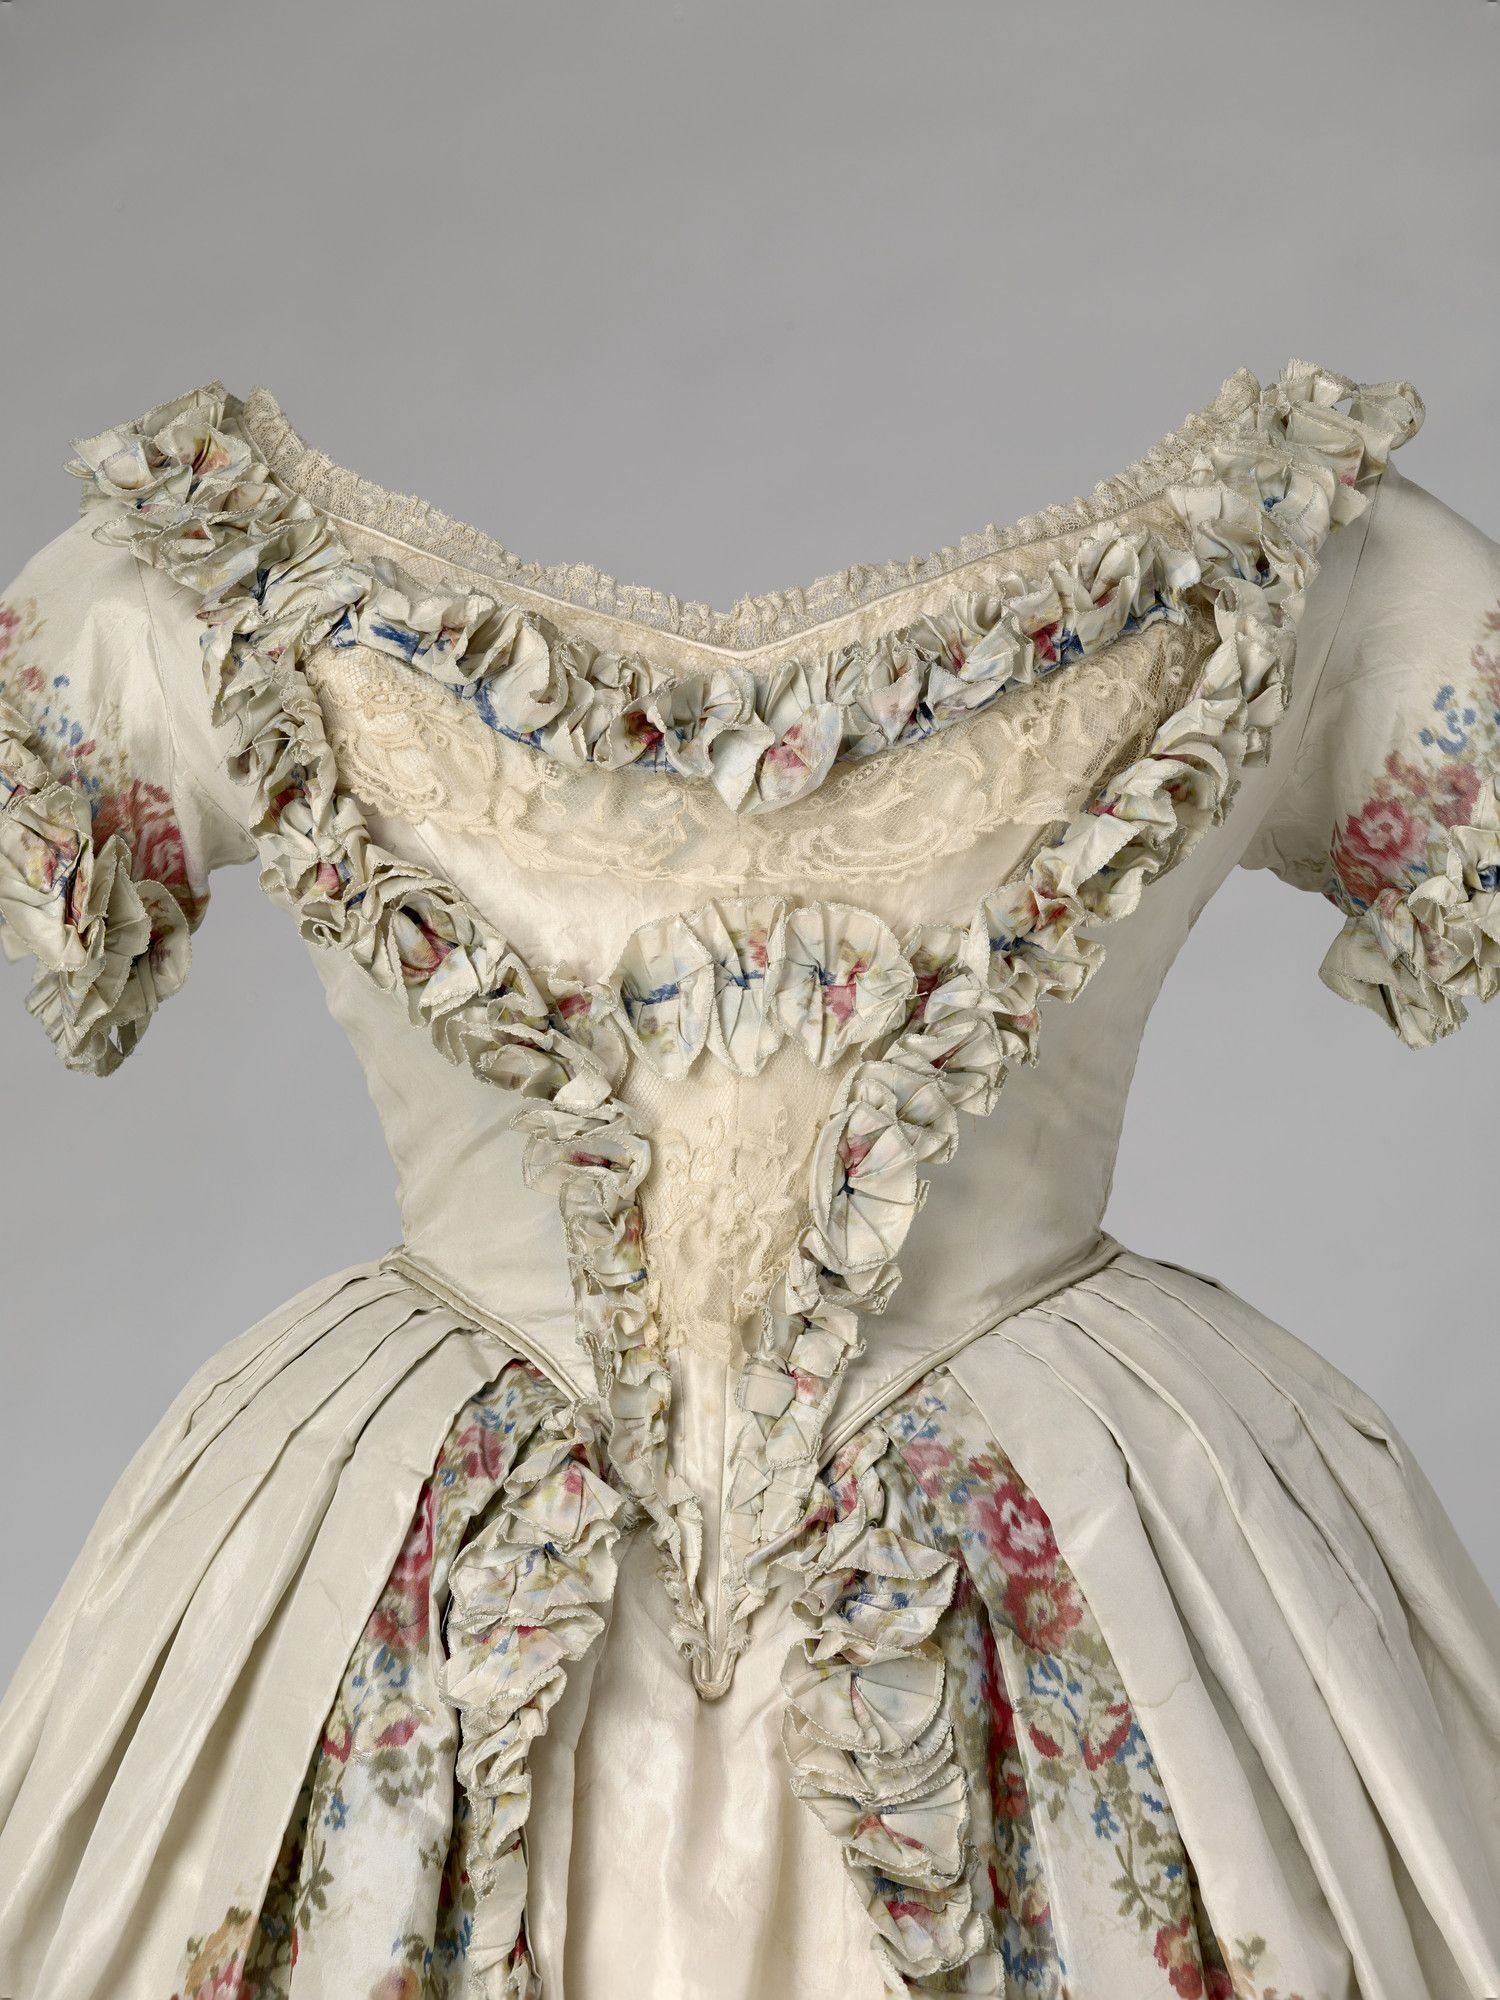 Evening dress of Queen Victoria, 1851. Silk and lace